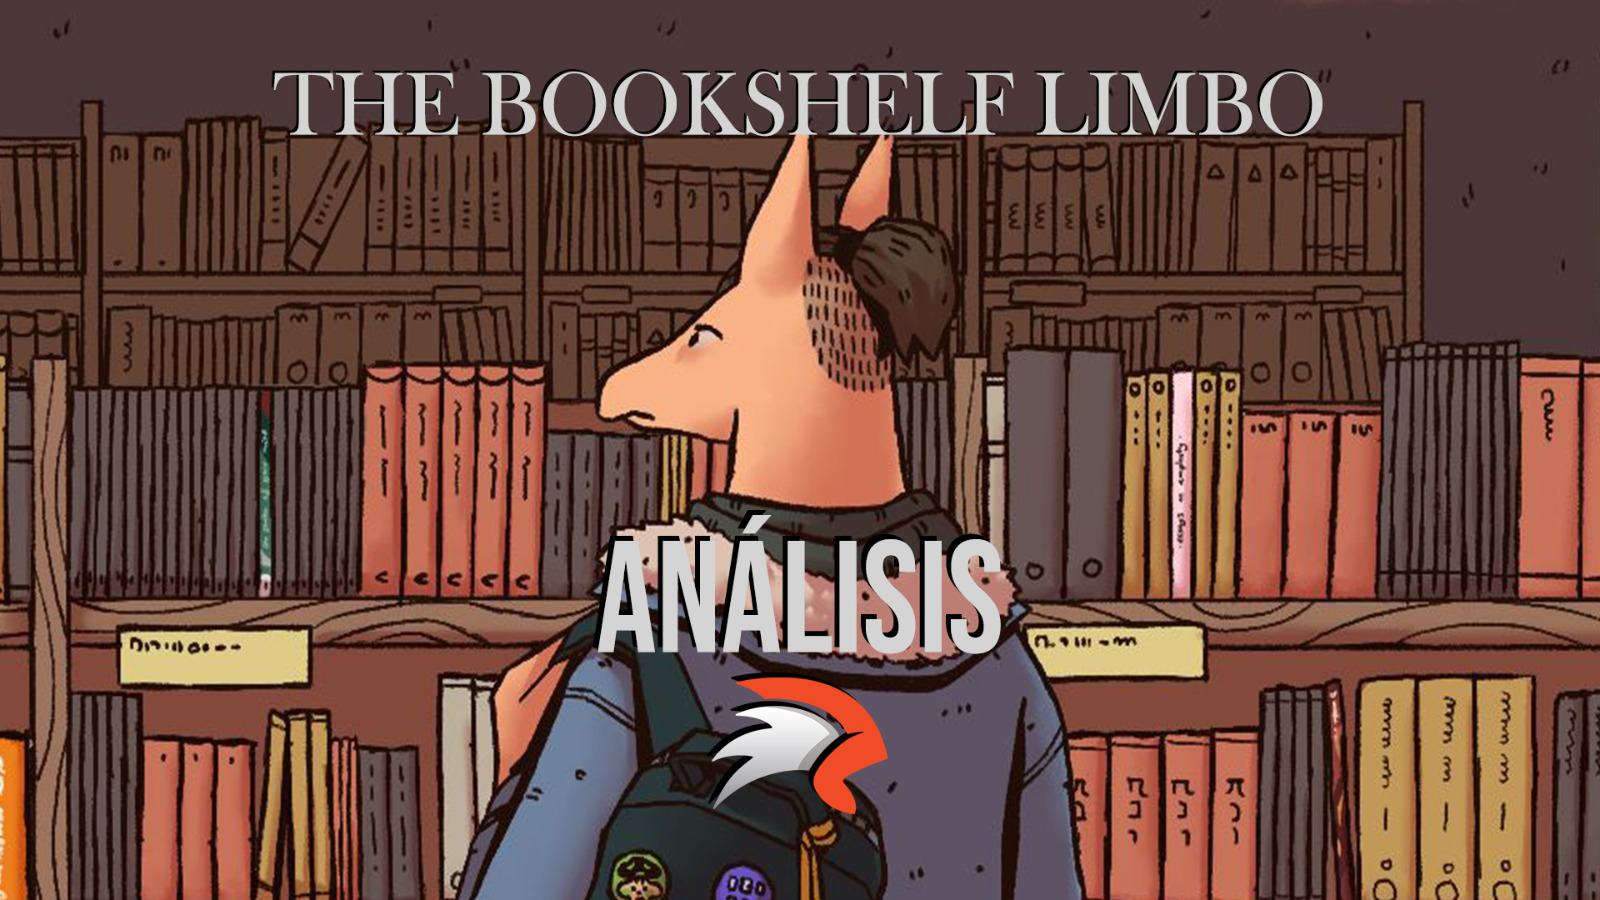 The Bookshelf Limbo, el arte de regalar y la relación paternal